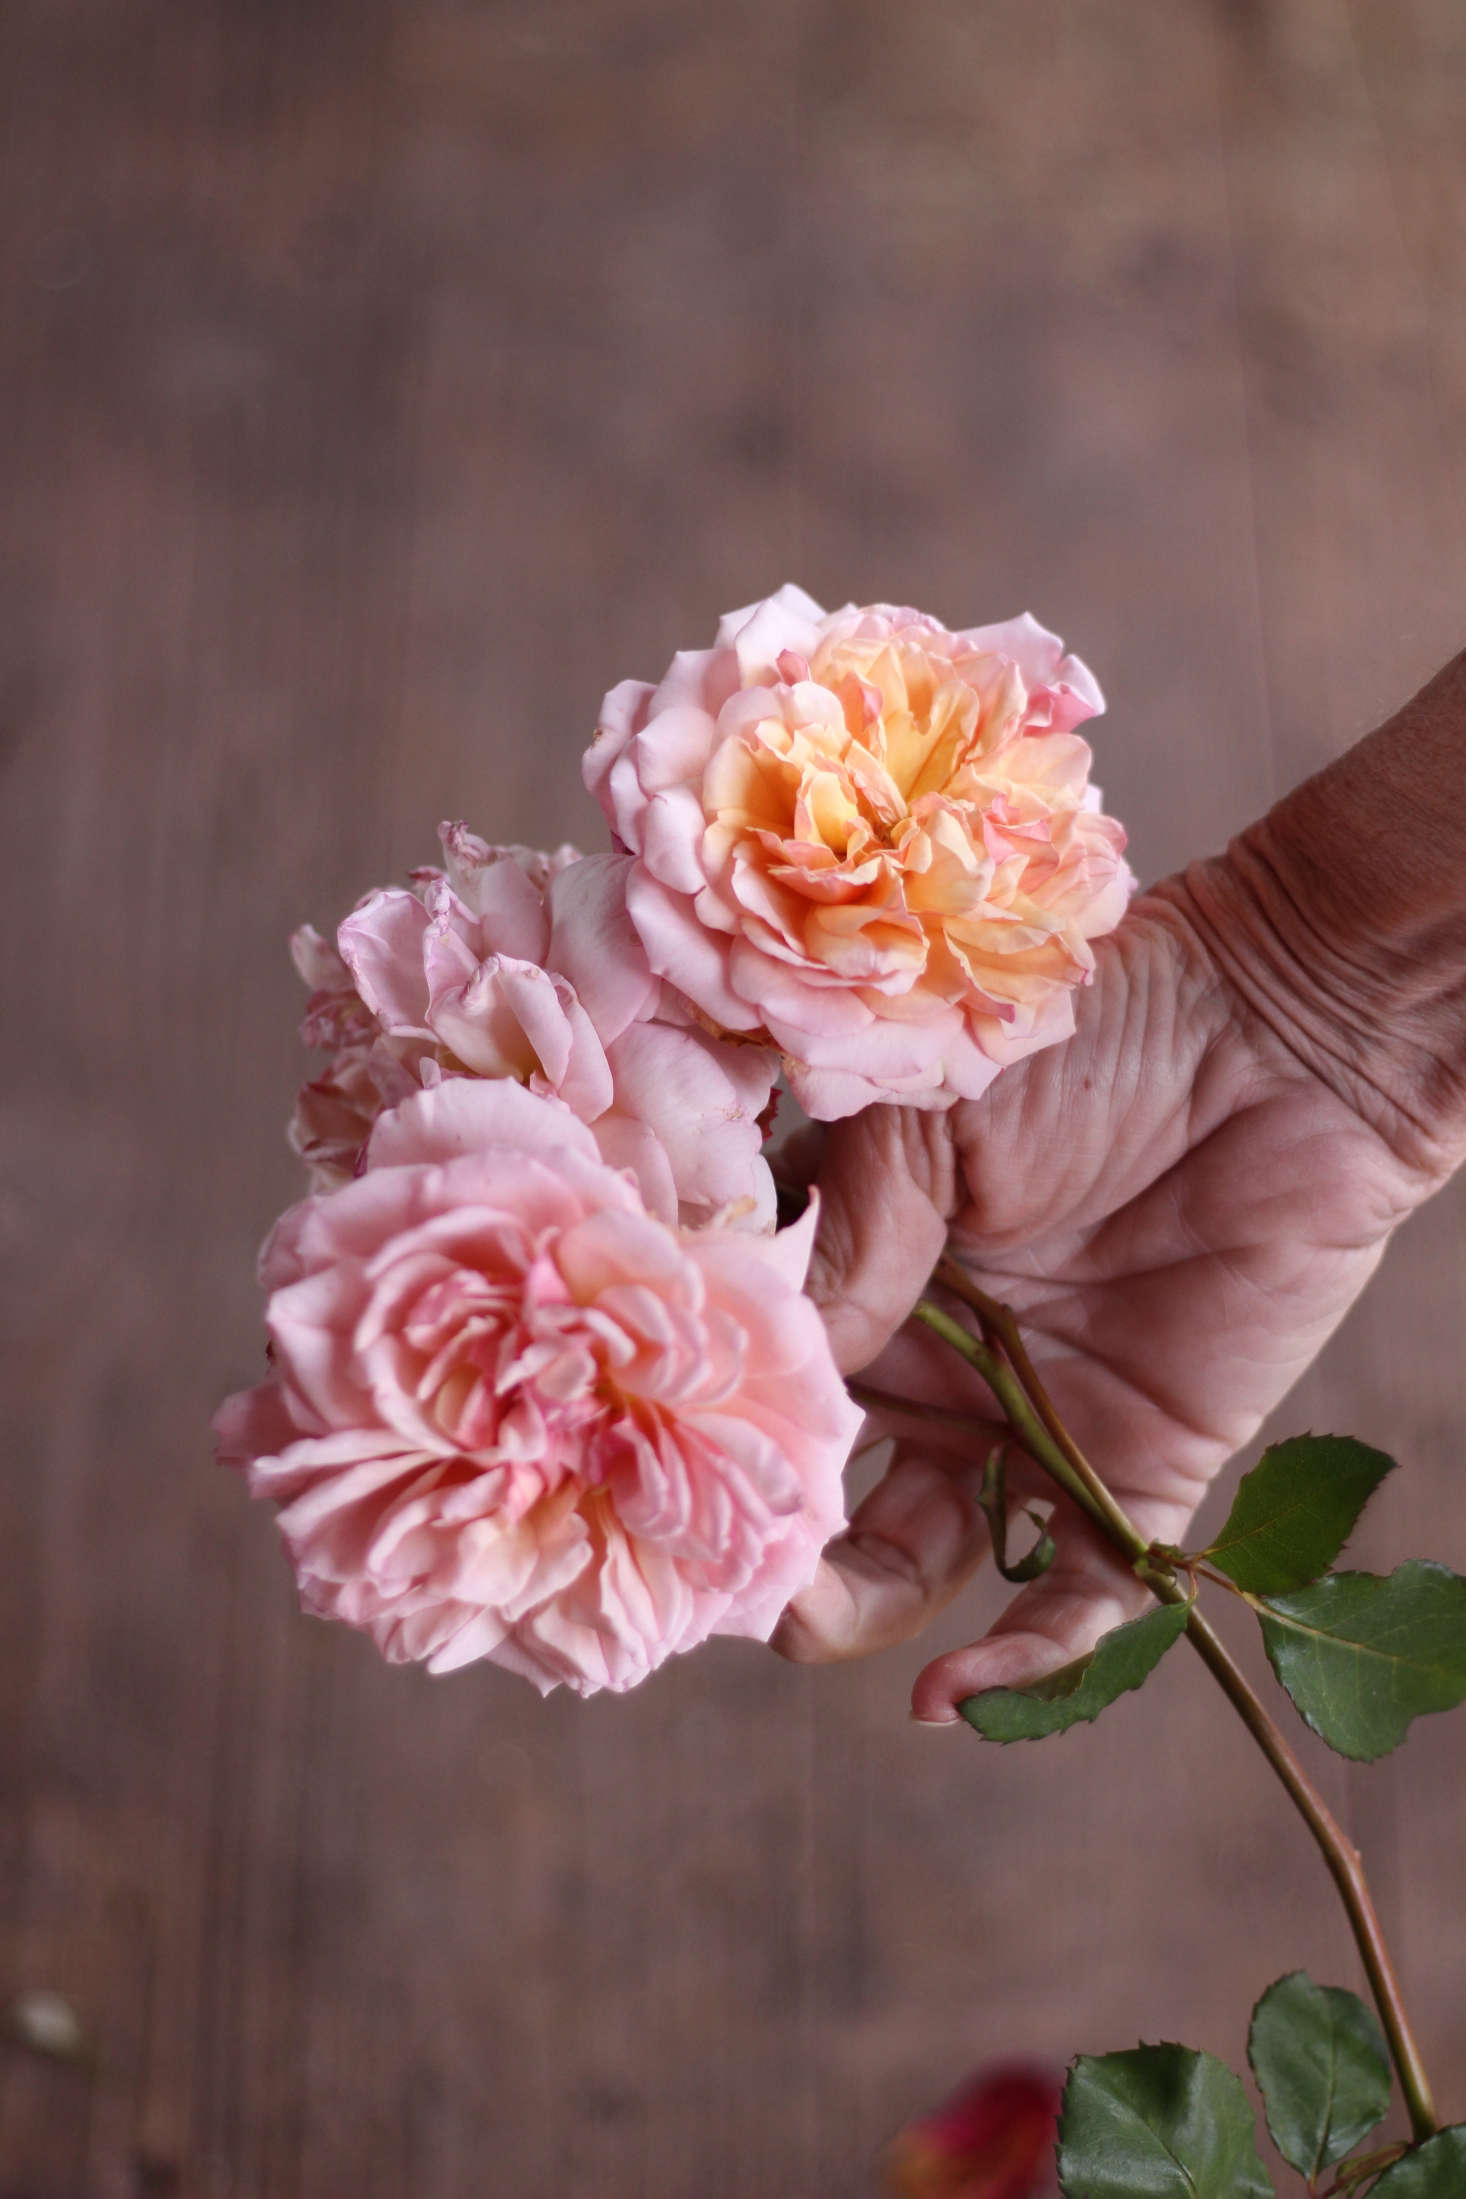 One of Danielle's top picks is 'Madame Paule Massad'. Belonging to the Generosa group of roses, these plants have been bred by the French rose company Guillot-Massad to be remontant (repeat blooming). They are hardy to zone 5.